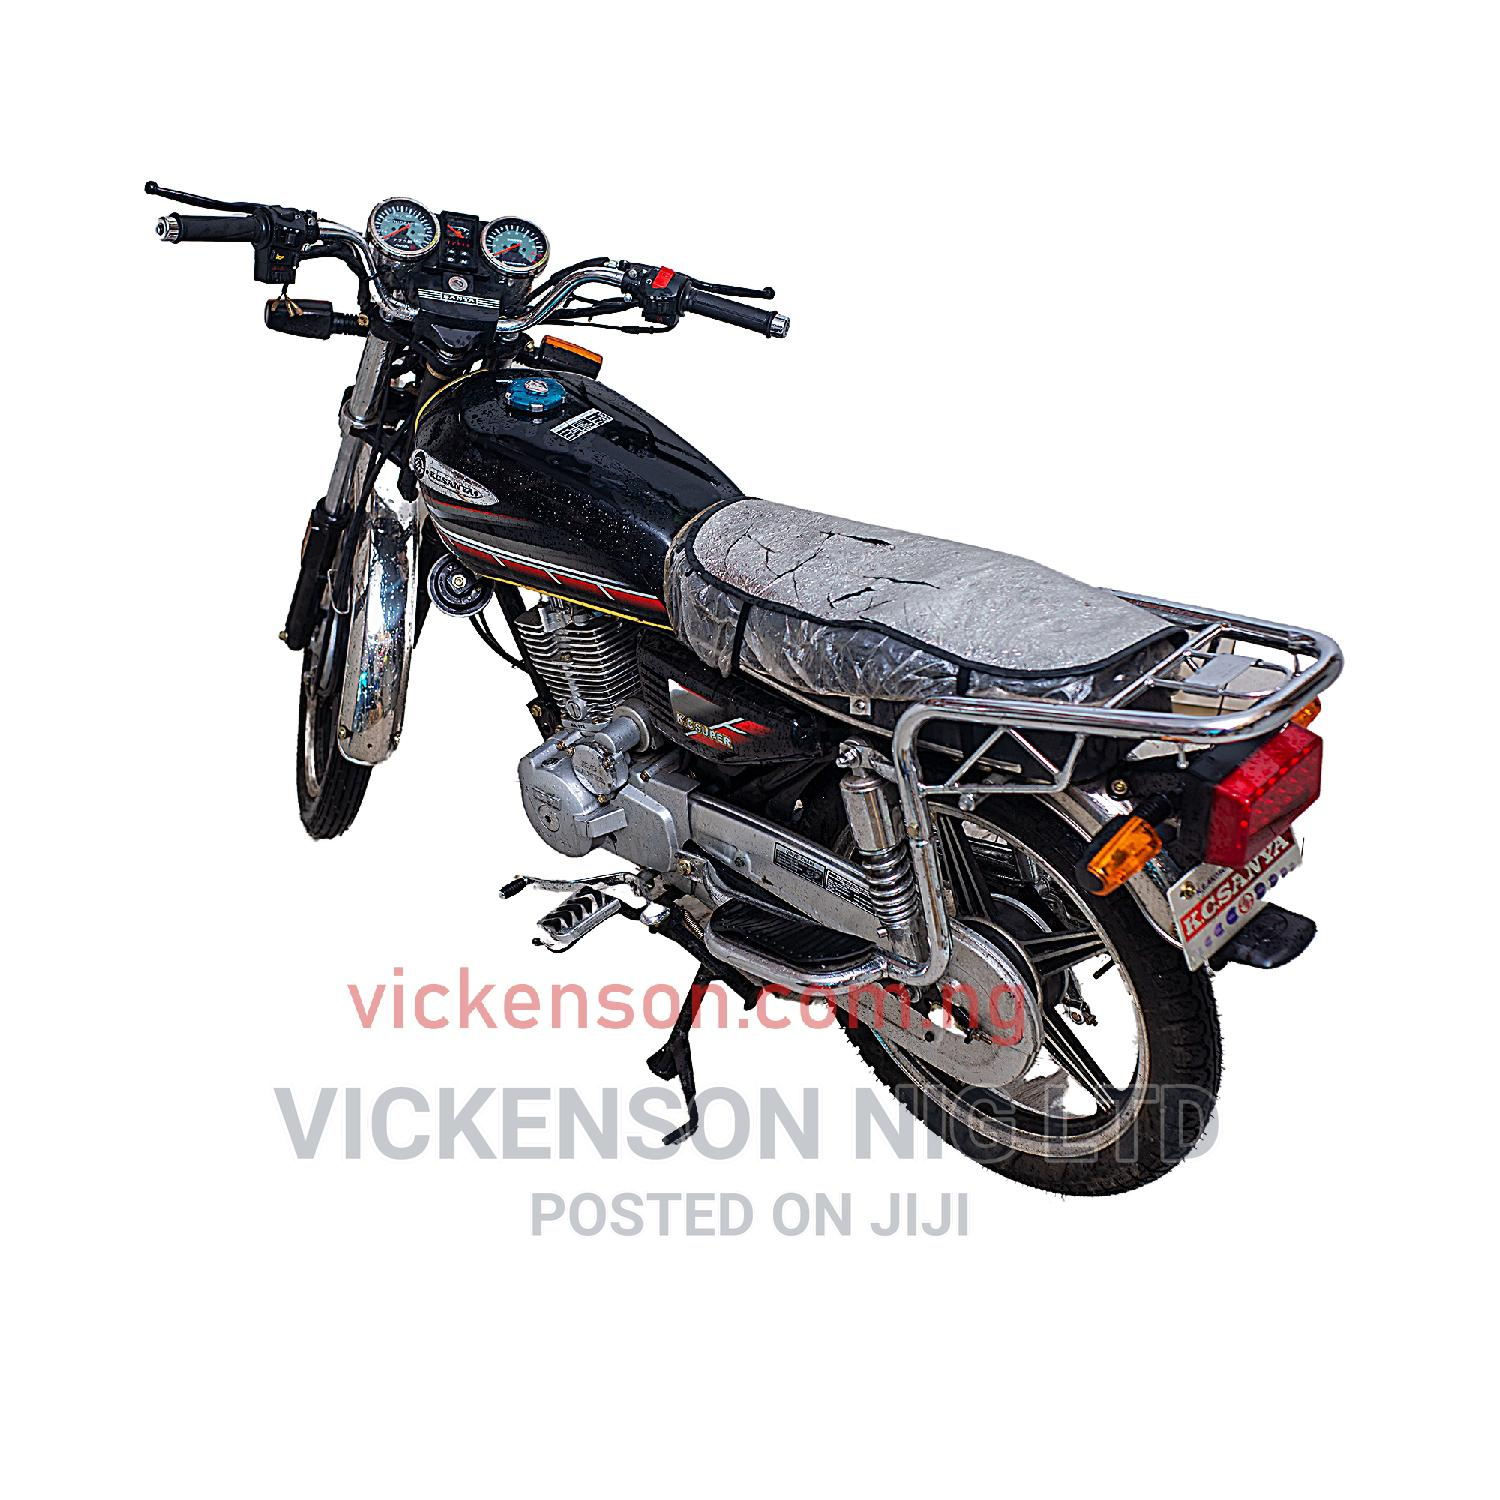 New Sanya SY150F 2020 Black | Motorcycles & Scooters for sale in Benin City, Edo State, Nigeria